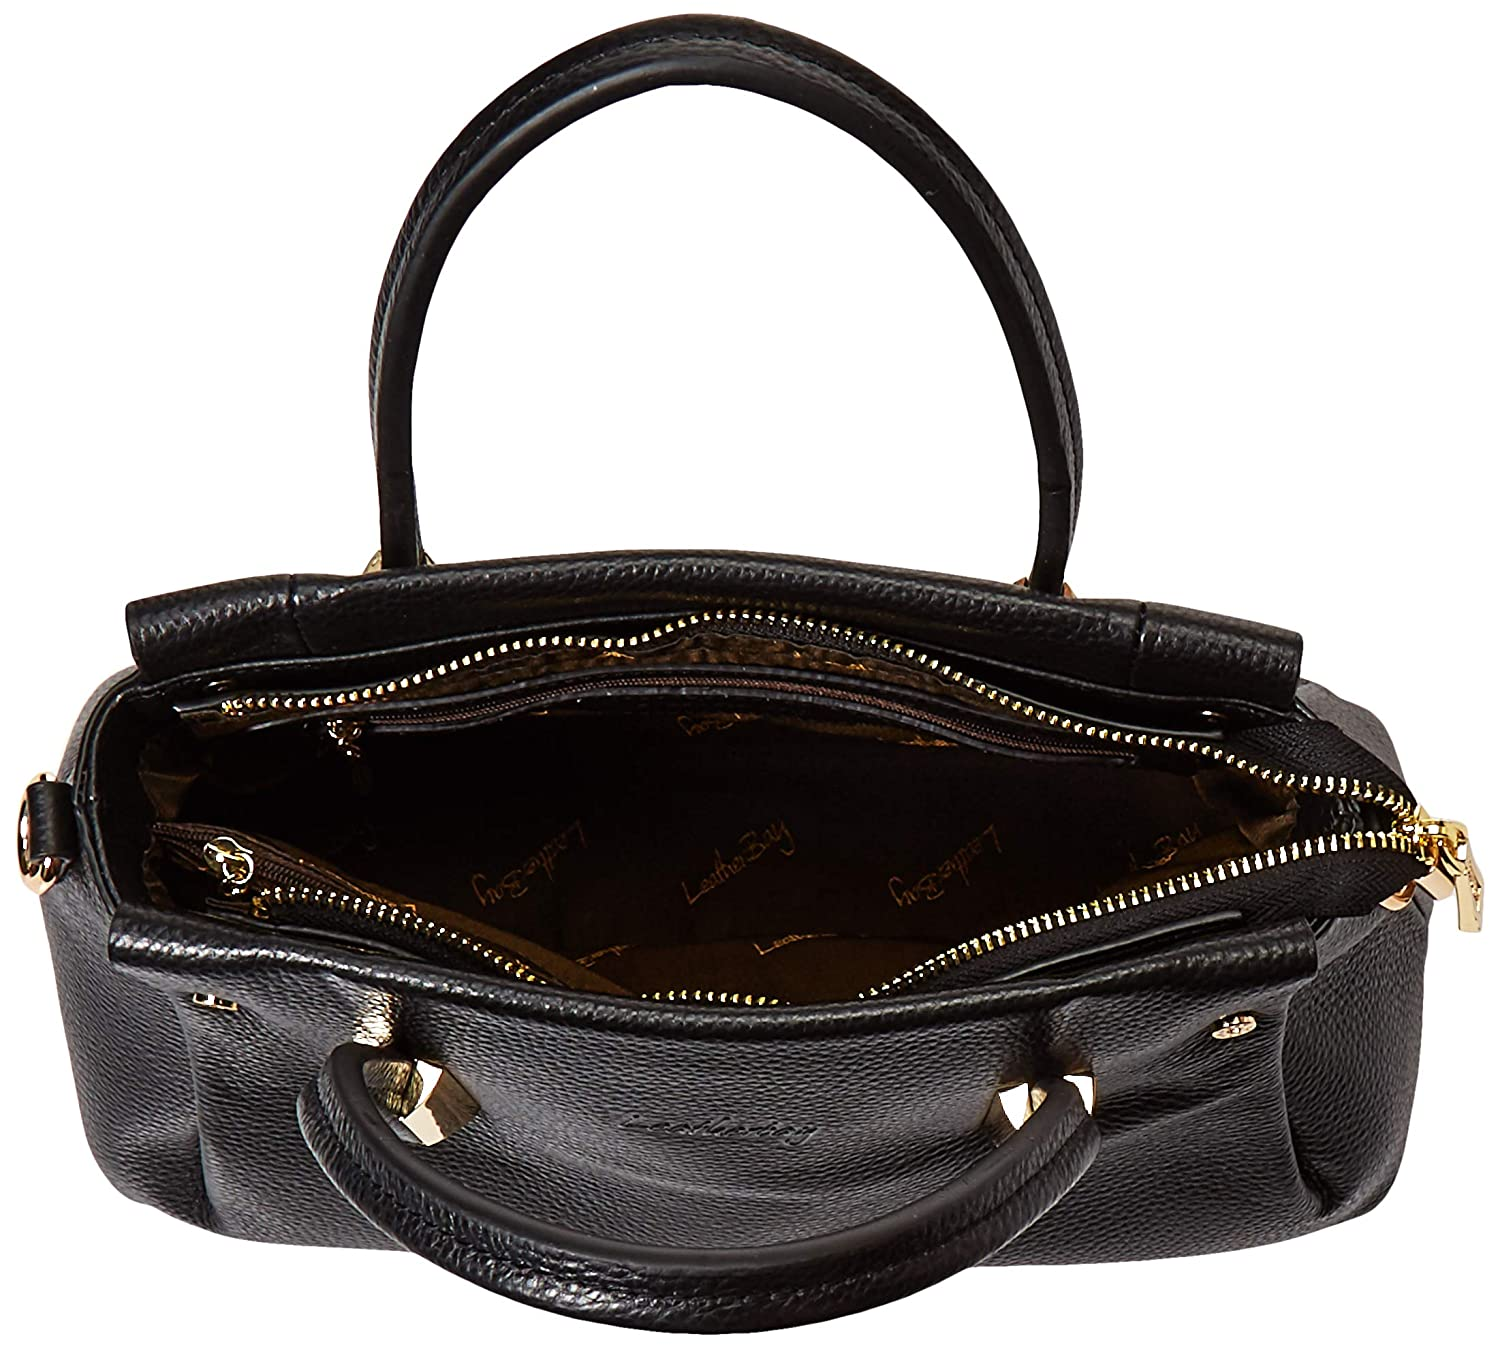 3722f11fd655 Amazon.com: Leatherbay Women's Bellano Handbag/Black Shoulder Bag ...